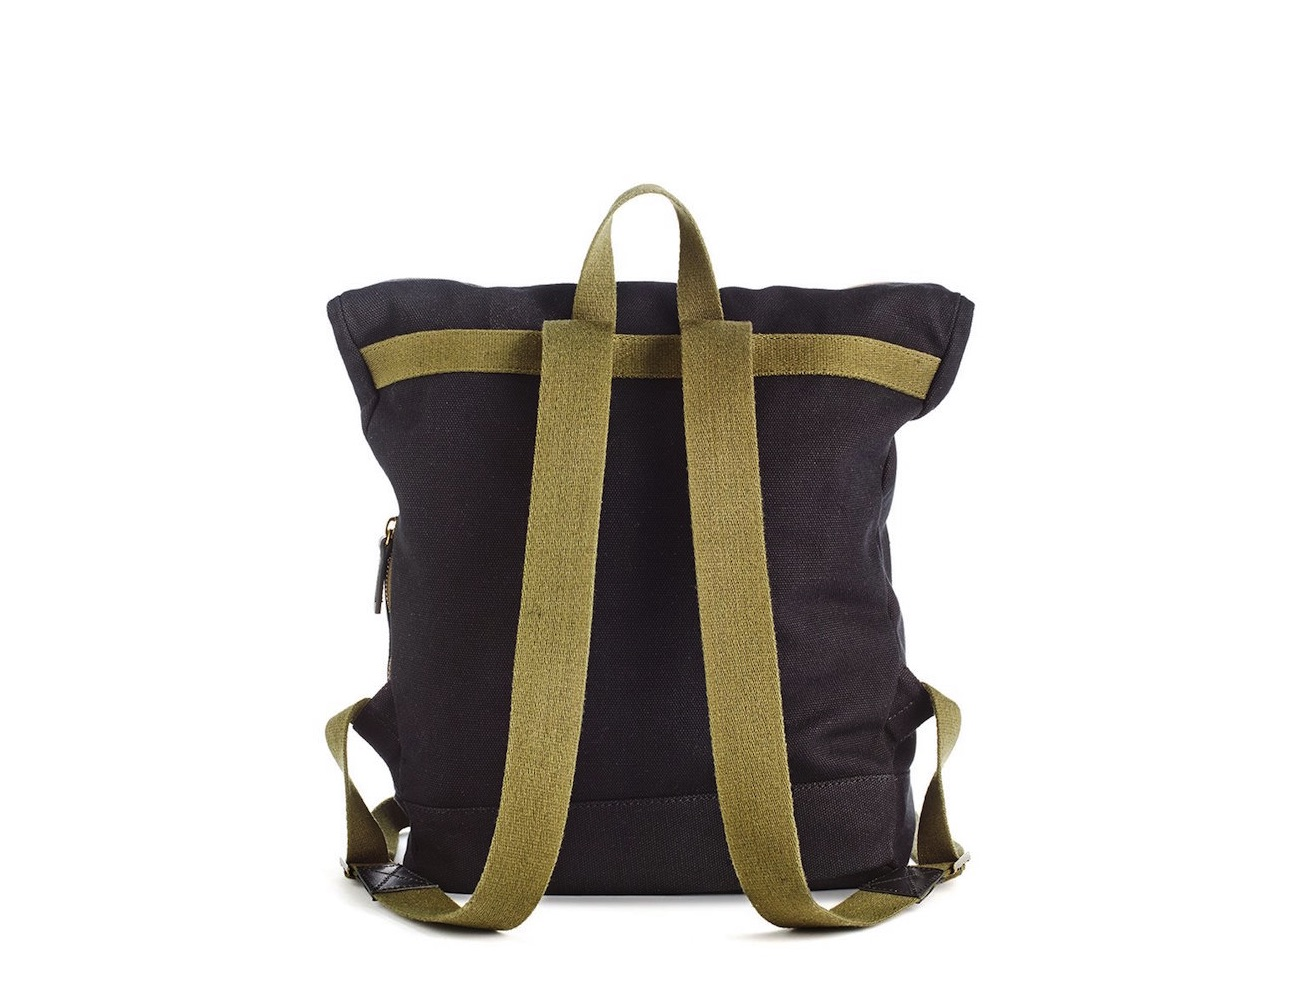 The Smith Backpack